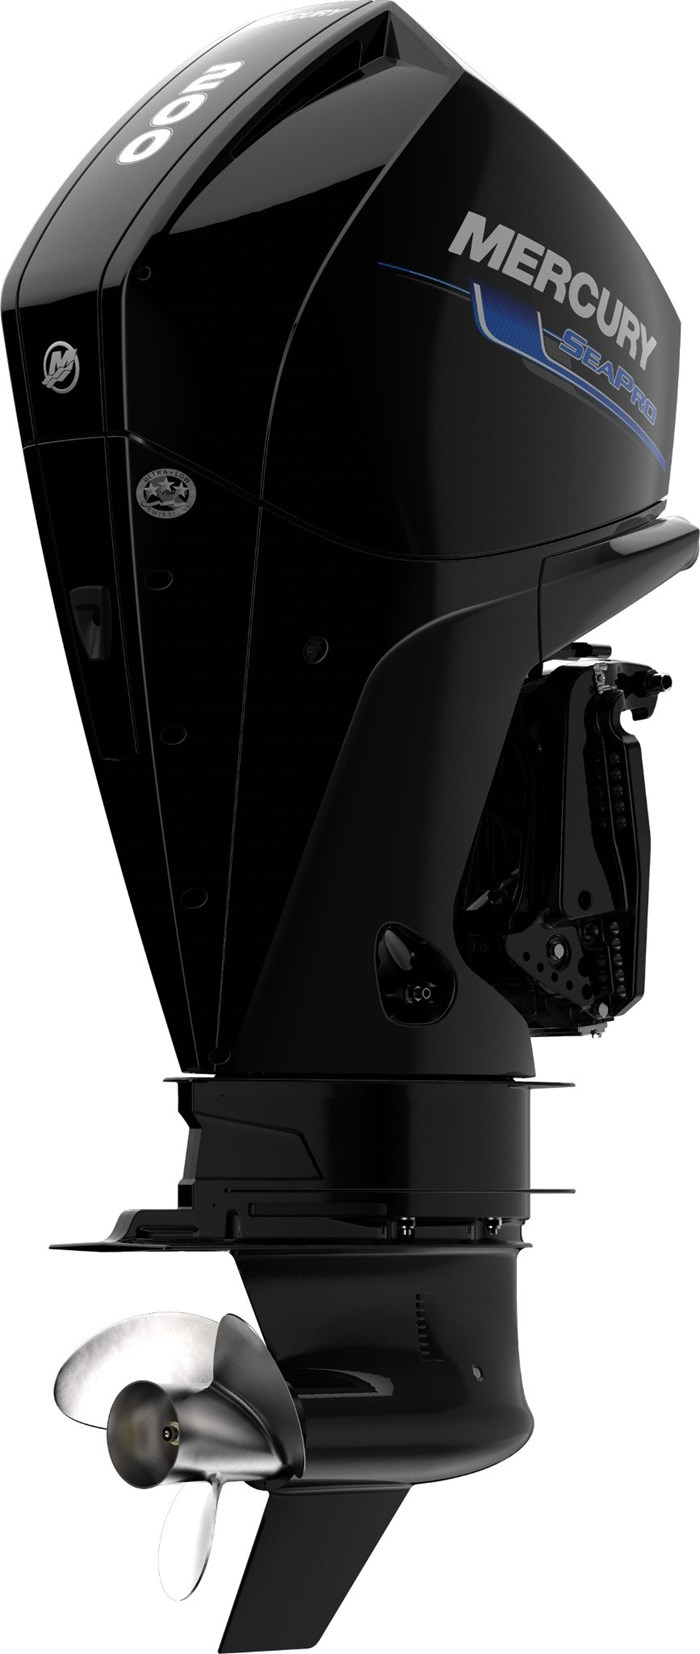 2021 Mercury 200CXL V-6 4-Stroke SeaPro DTS Commercial Outboard Photo 6 of 26